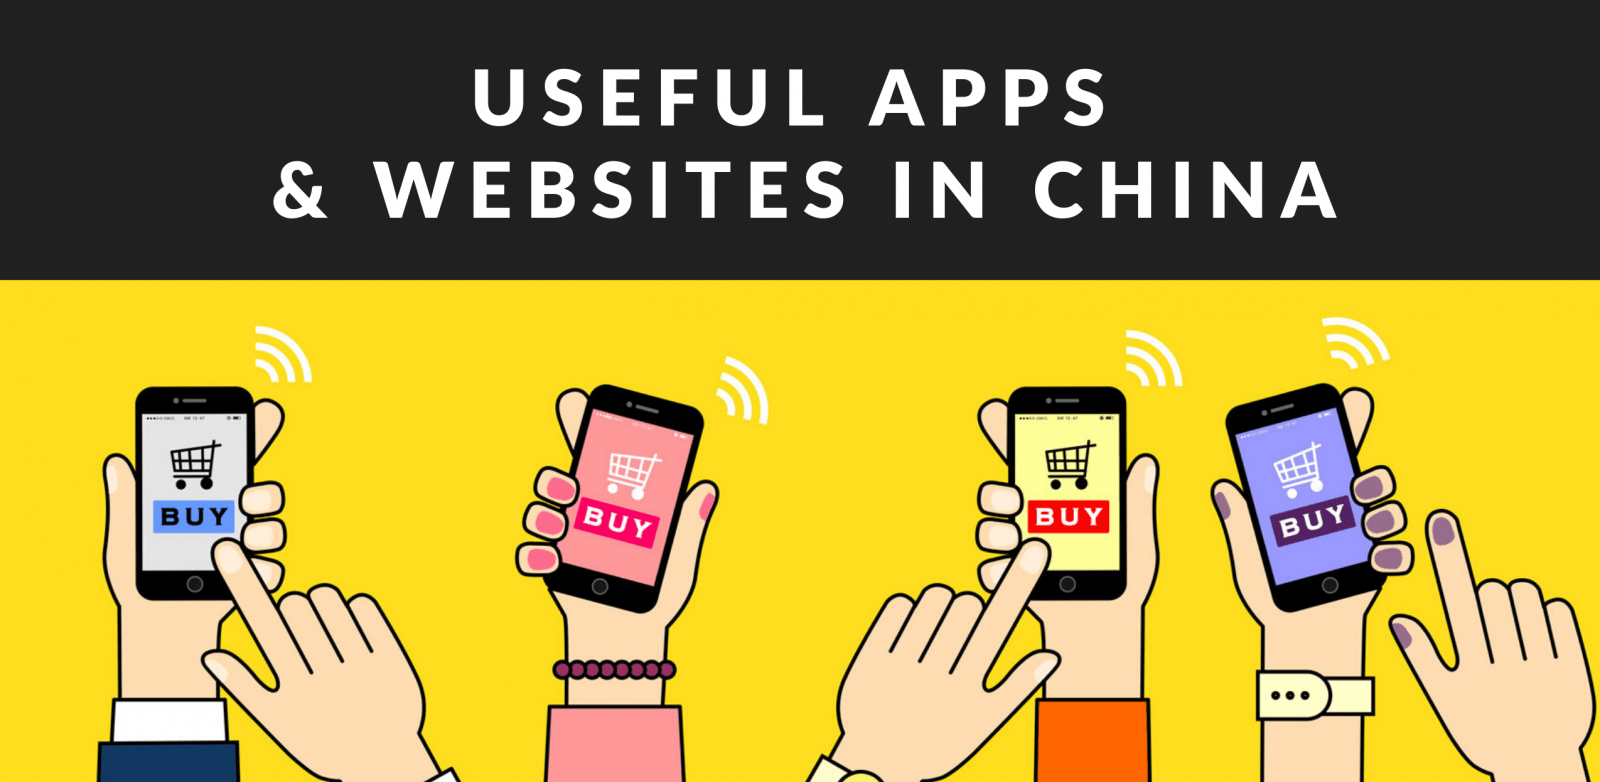 Useful APPS & Websites in China